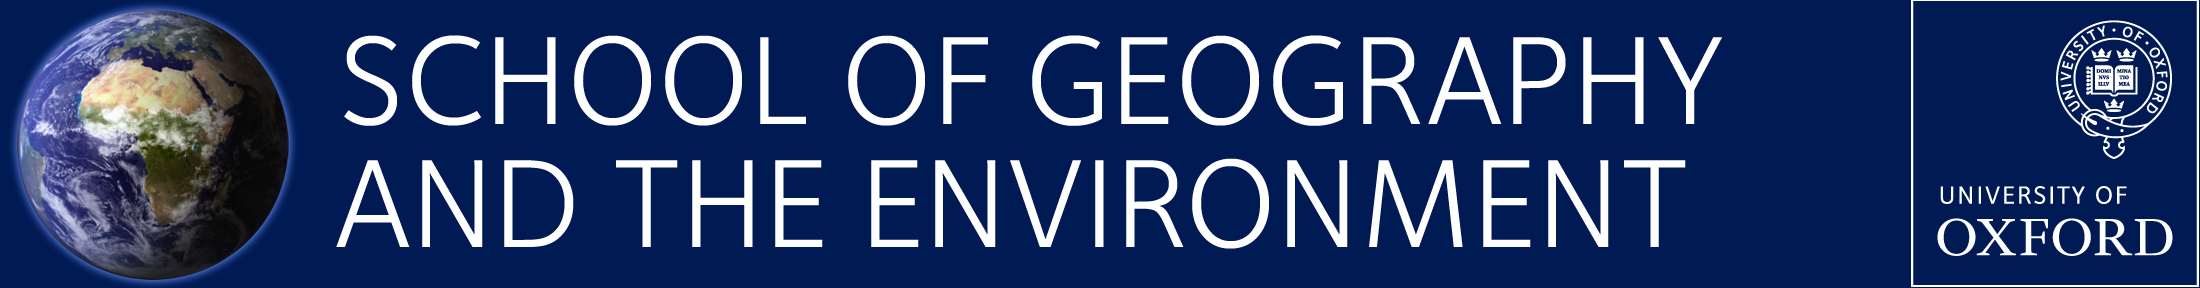 School of Geography and the Environment, University of Oxford